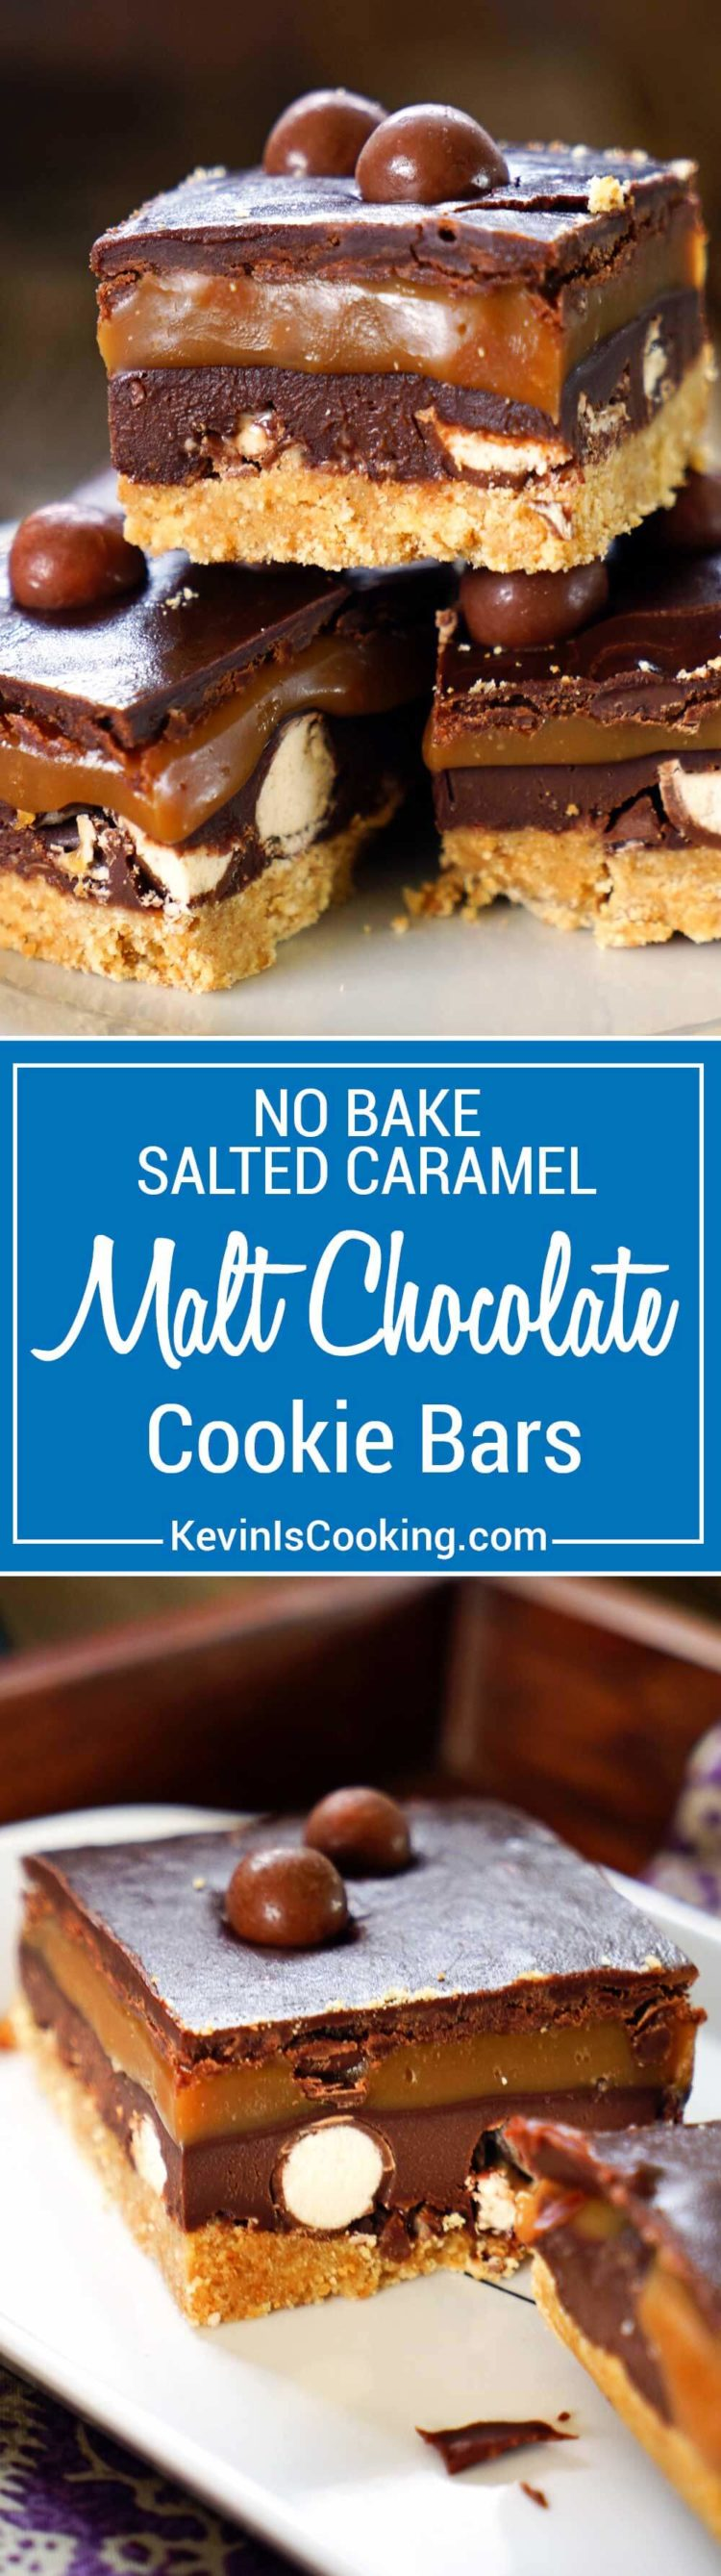 Chocolate Lovers! No Bake Salted Caramel Chocolate Cookie Bars have a cookie base, chocolate ganache, malt balls, caramel more chocolate on top.